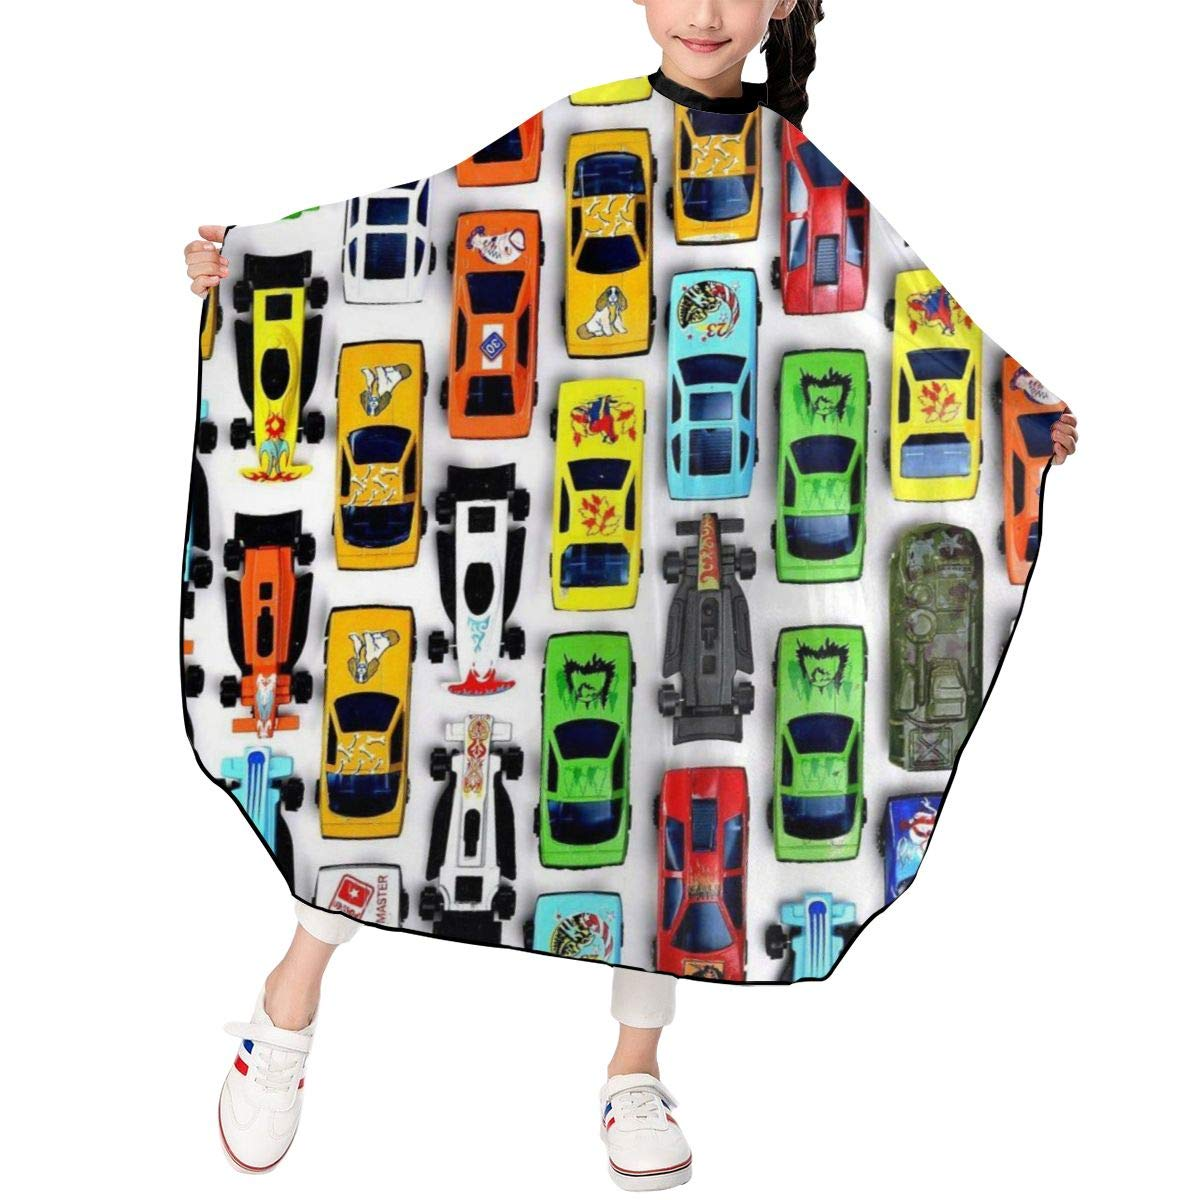 Boy's Toy Cartoon Car Hair Cutting Barber Cape for Kids Home Hair Cutting, Salon, and Styling